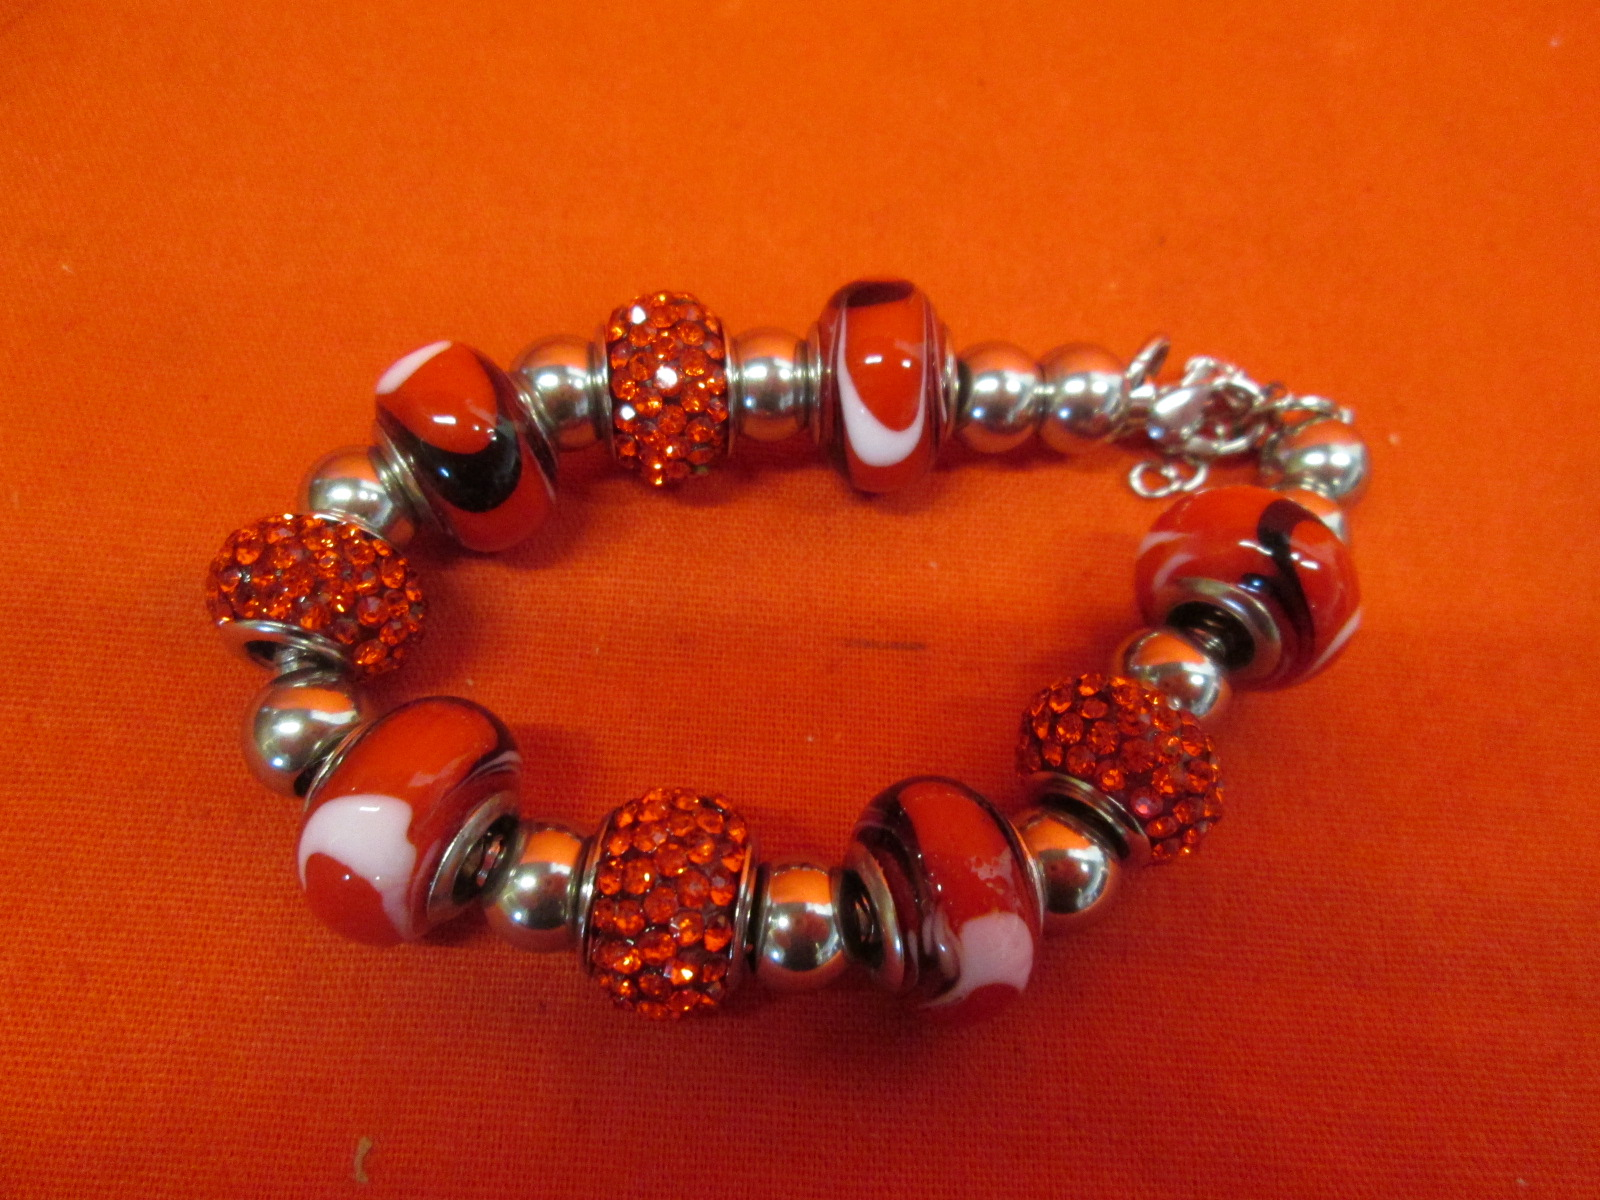 Stainless Steel Murano Bracelet With Charms Red SBK2554 Adjustable